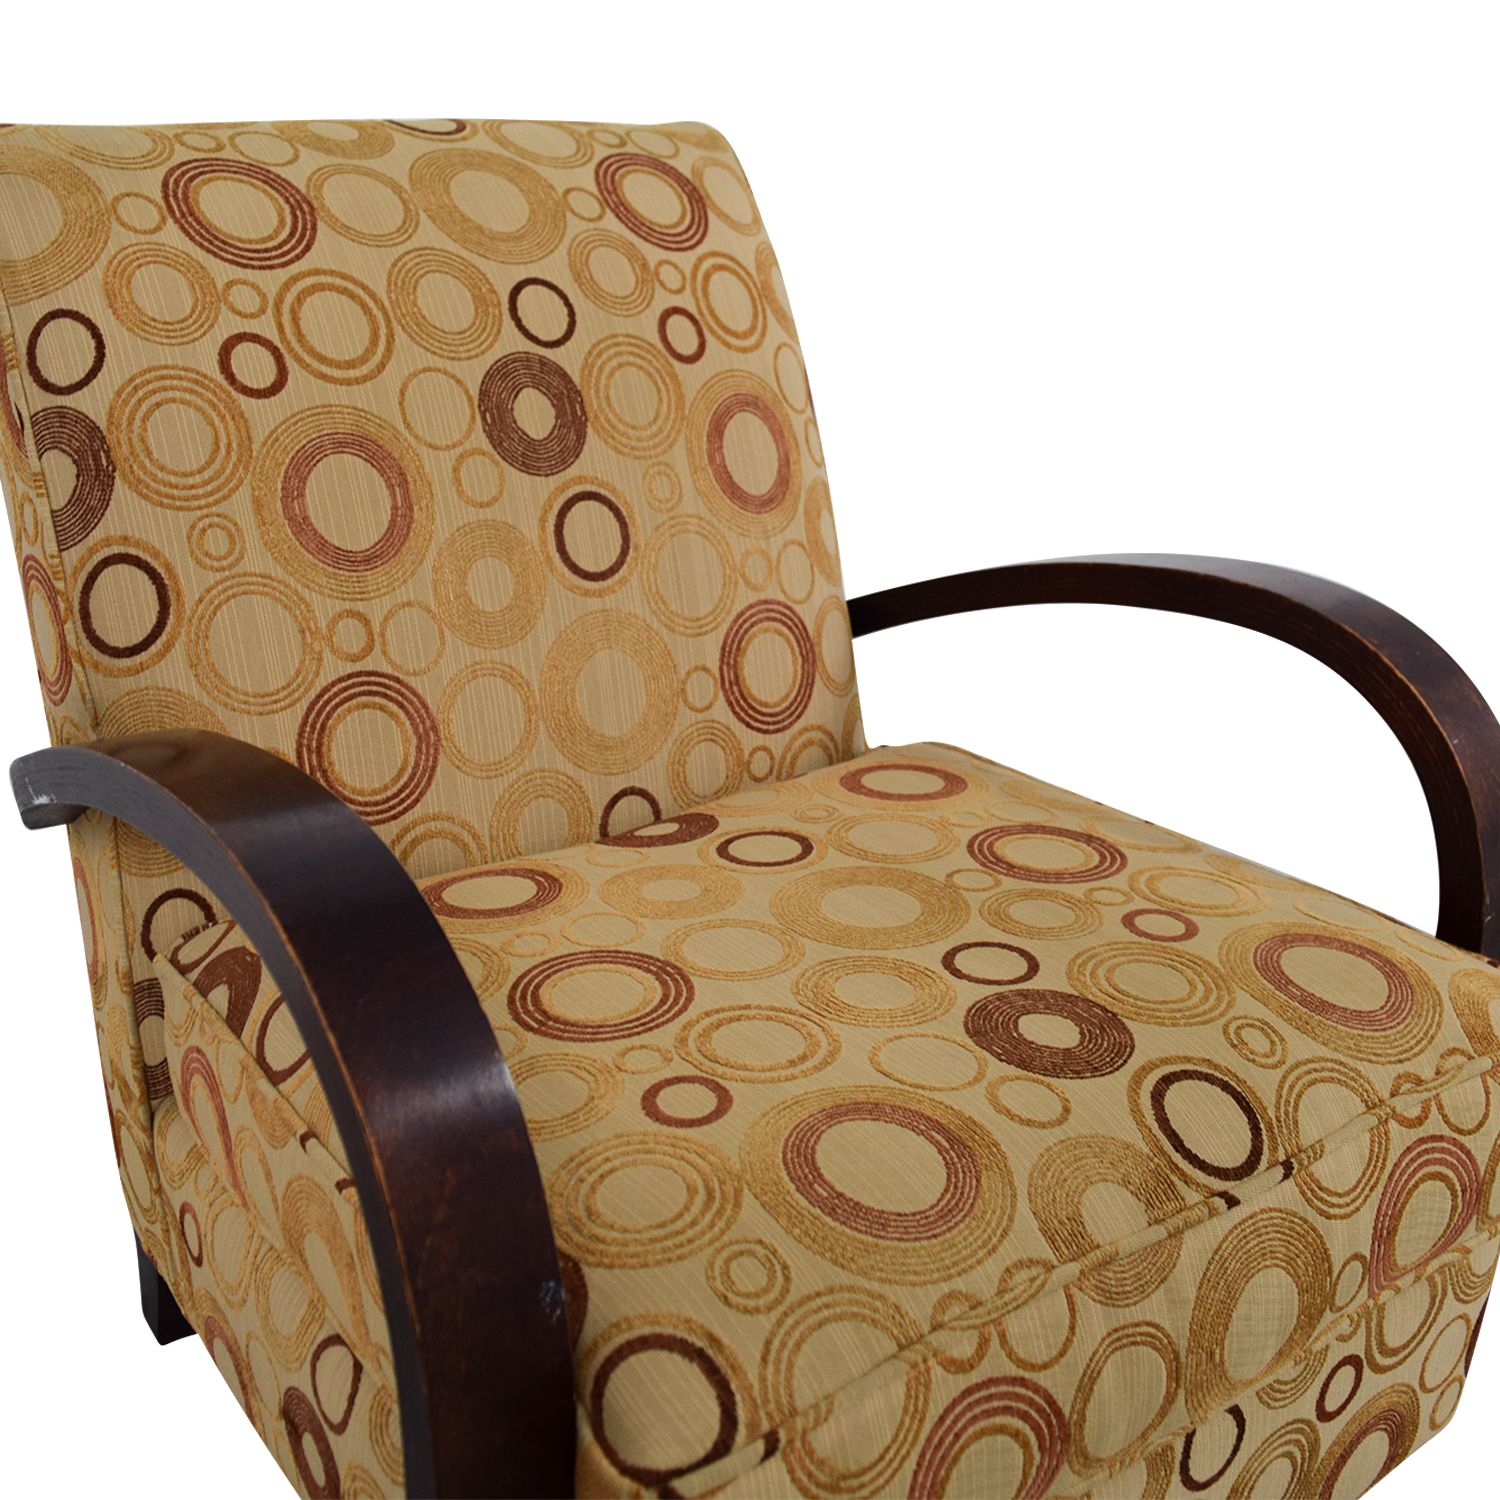 ... Pier 1 Imports Pier 1 Imports Circle Accent Chair On Sale ...